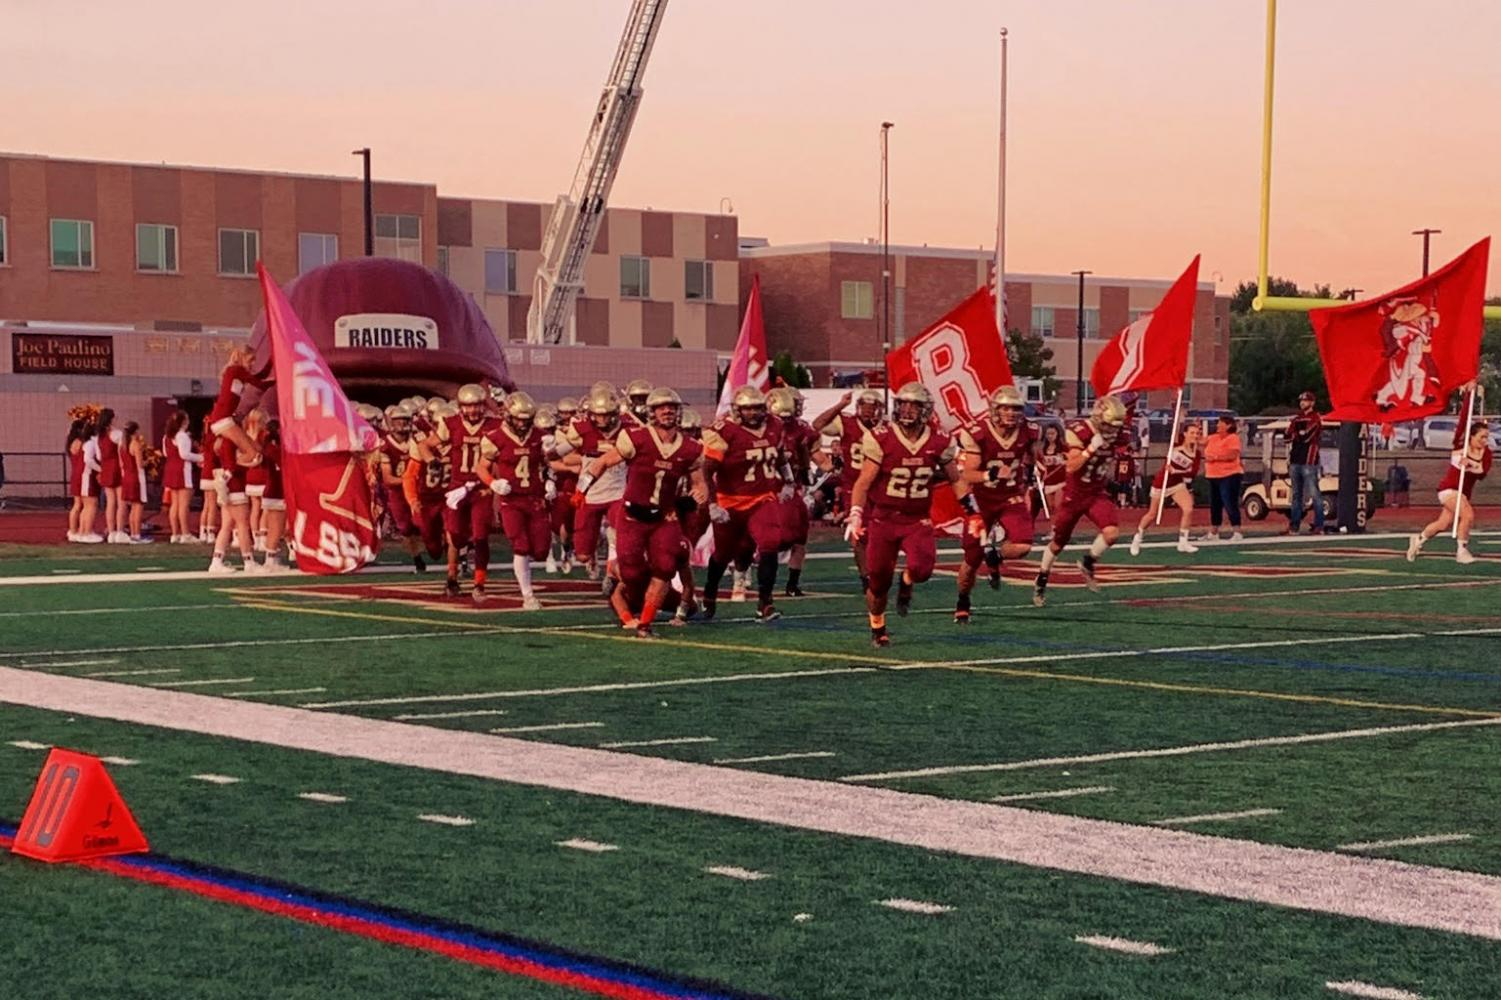 The Raiders running out of the tunnel before their games always gets the home crowd buzzing with excitement.